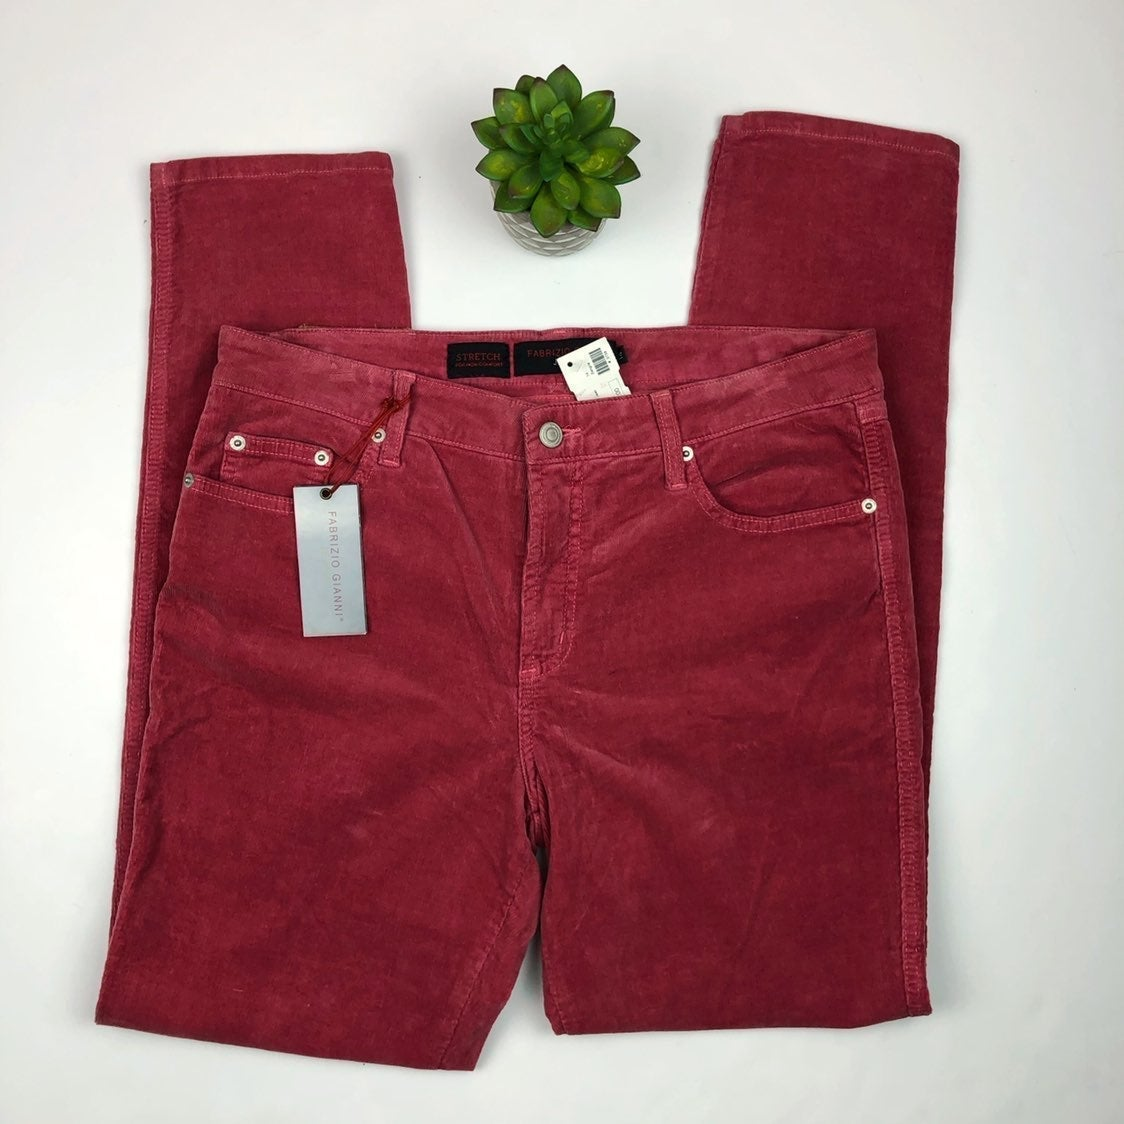 Fabrizio Gianni Red Corduroy Pants NWT